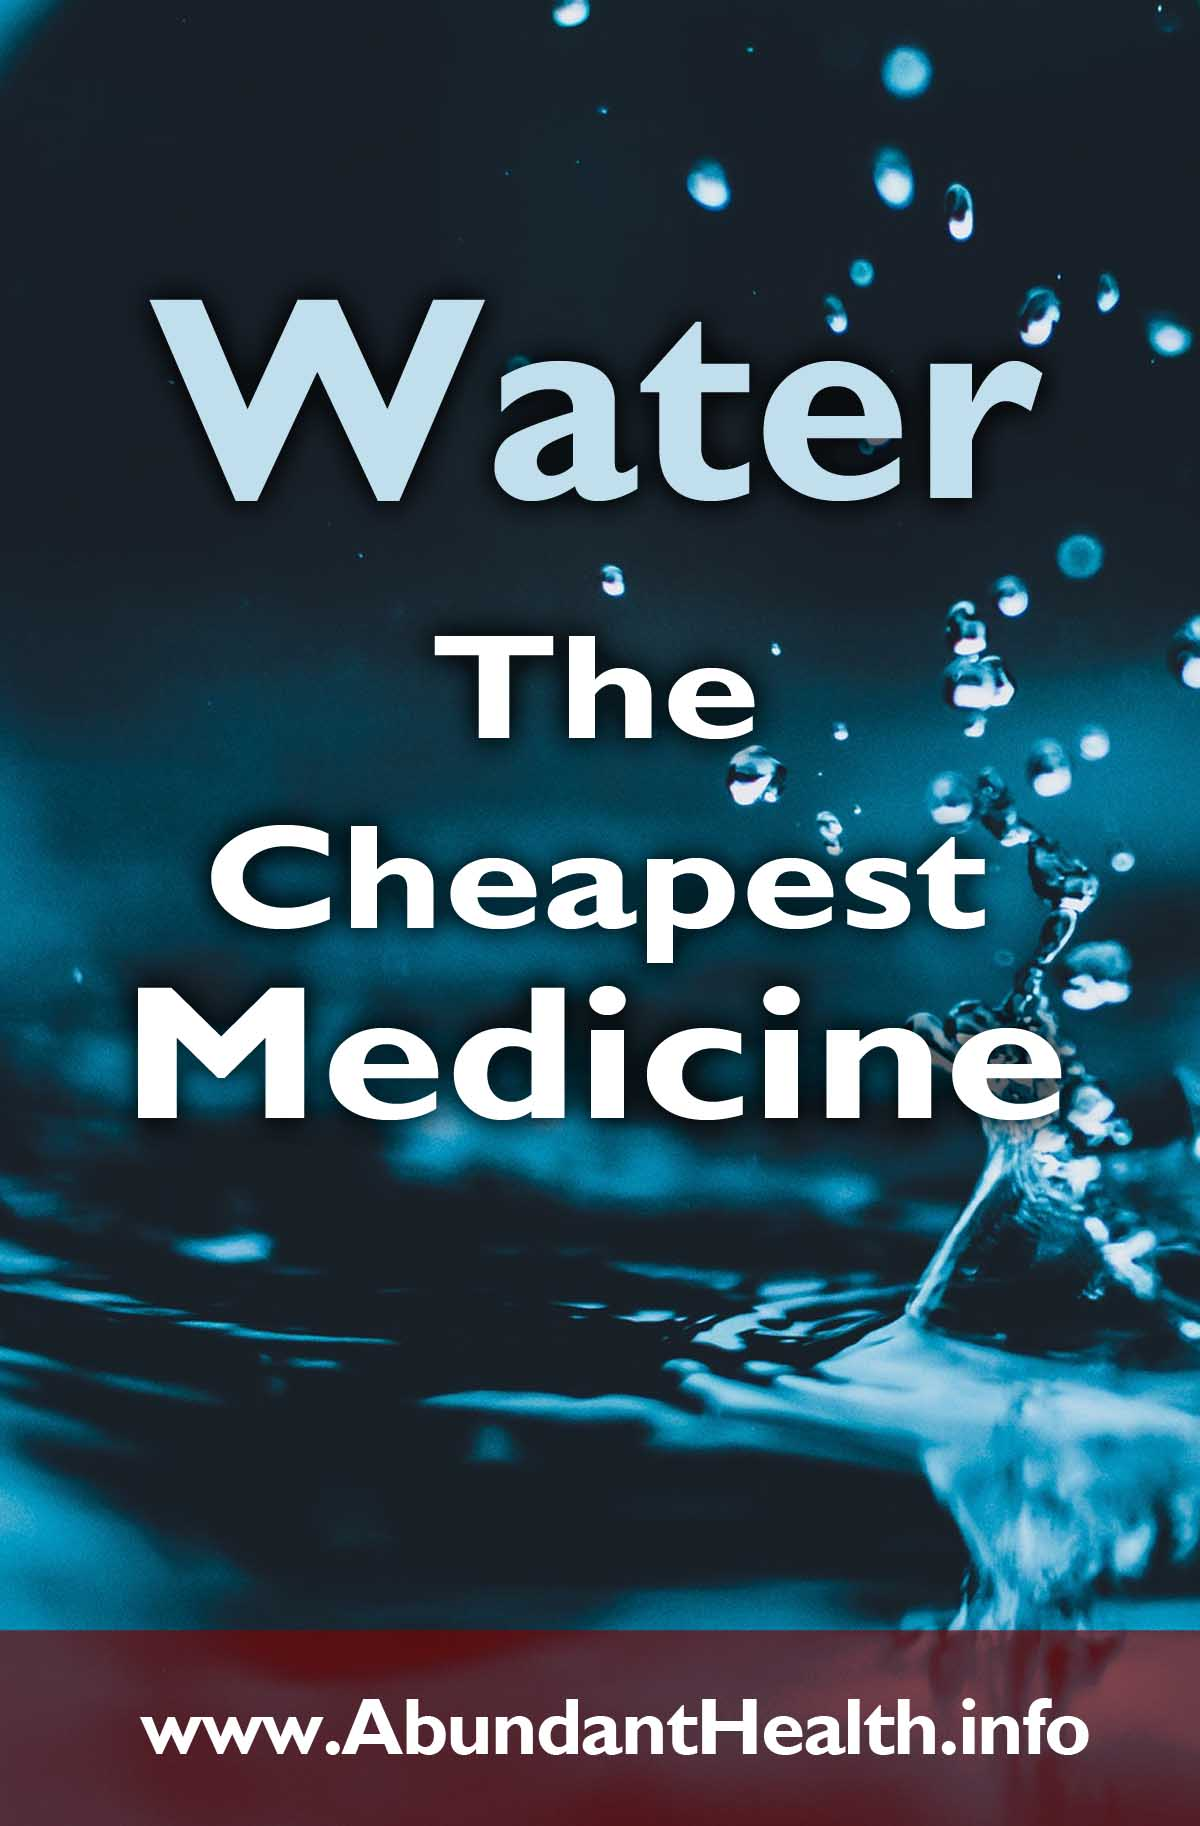 Water - The Cheapest Medicine